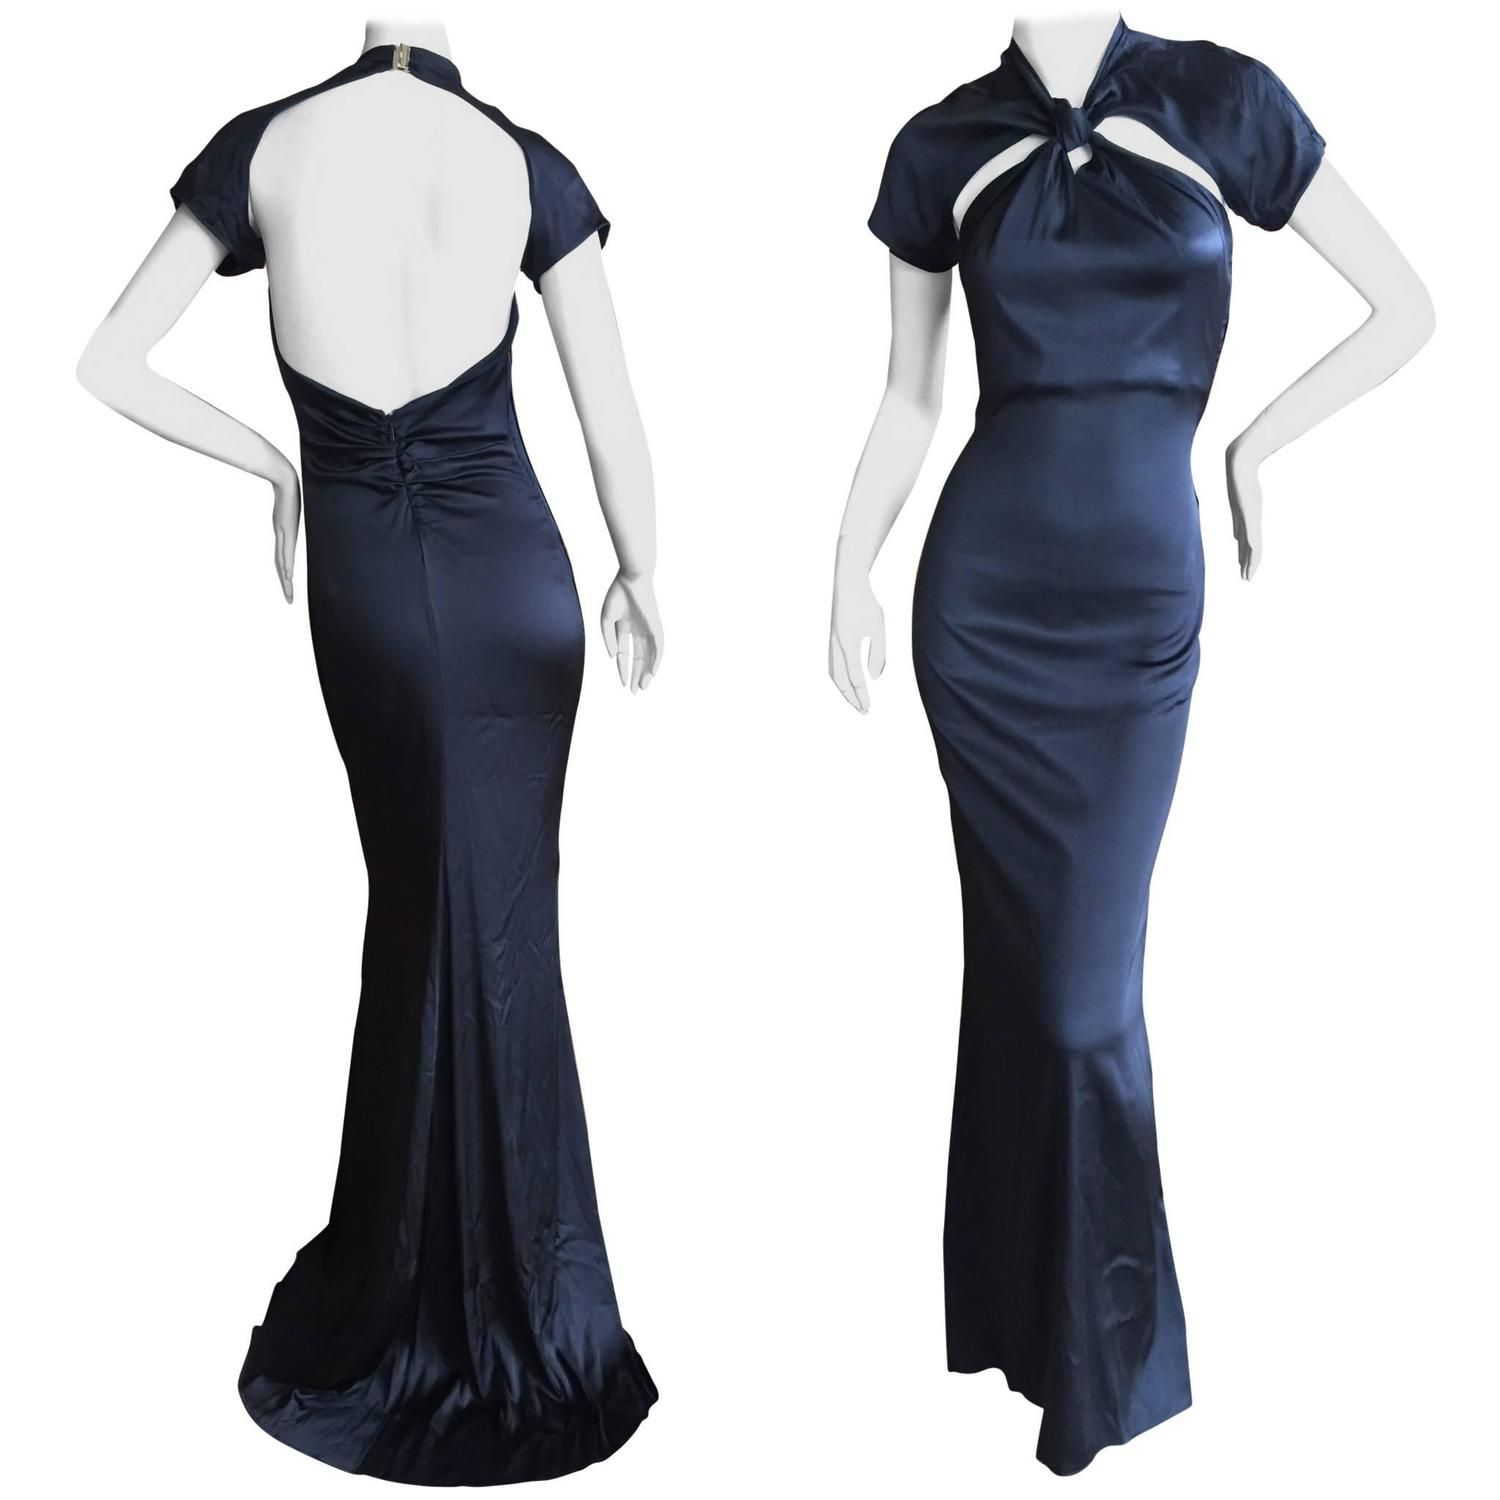 86f1e2044 Gucci by Tom Ford Backless Black Silk Dress   From a collection of rare  vintage evening